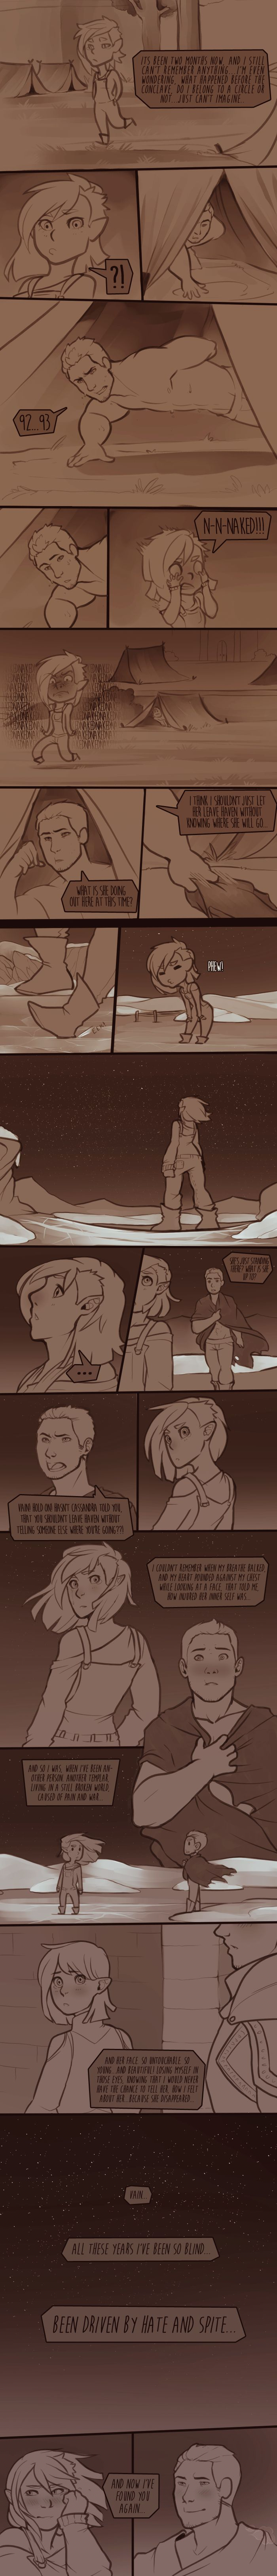 With Vain, Cullen, and Varric and Dorian and LOVE! Much love nyeh~ CHARACTERs © BIOWARE VAIN & ART © schl4fmuetze